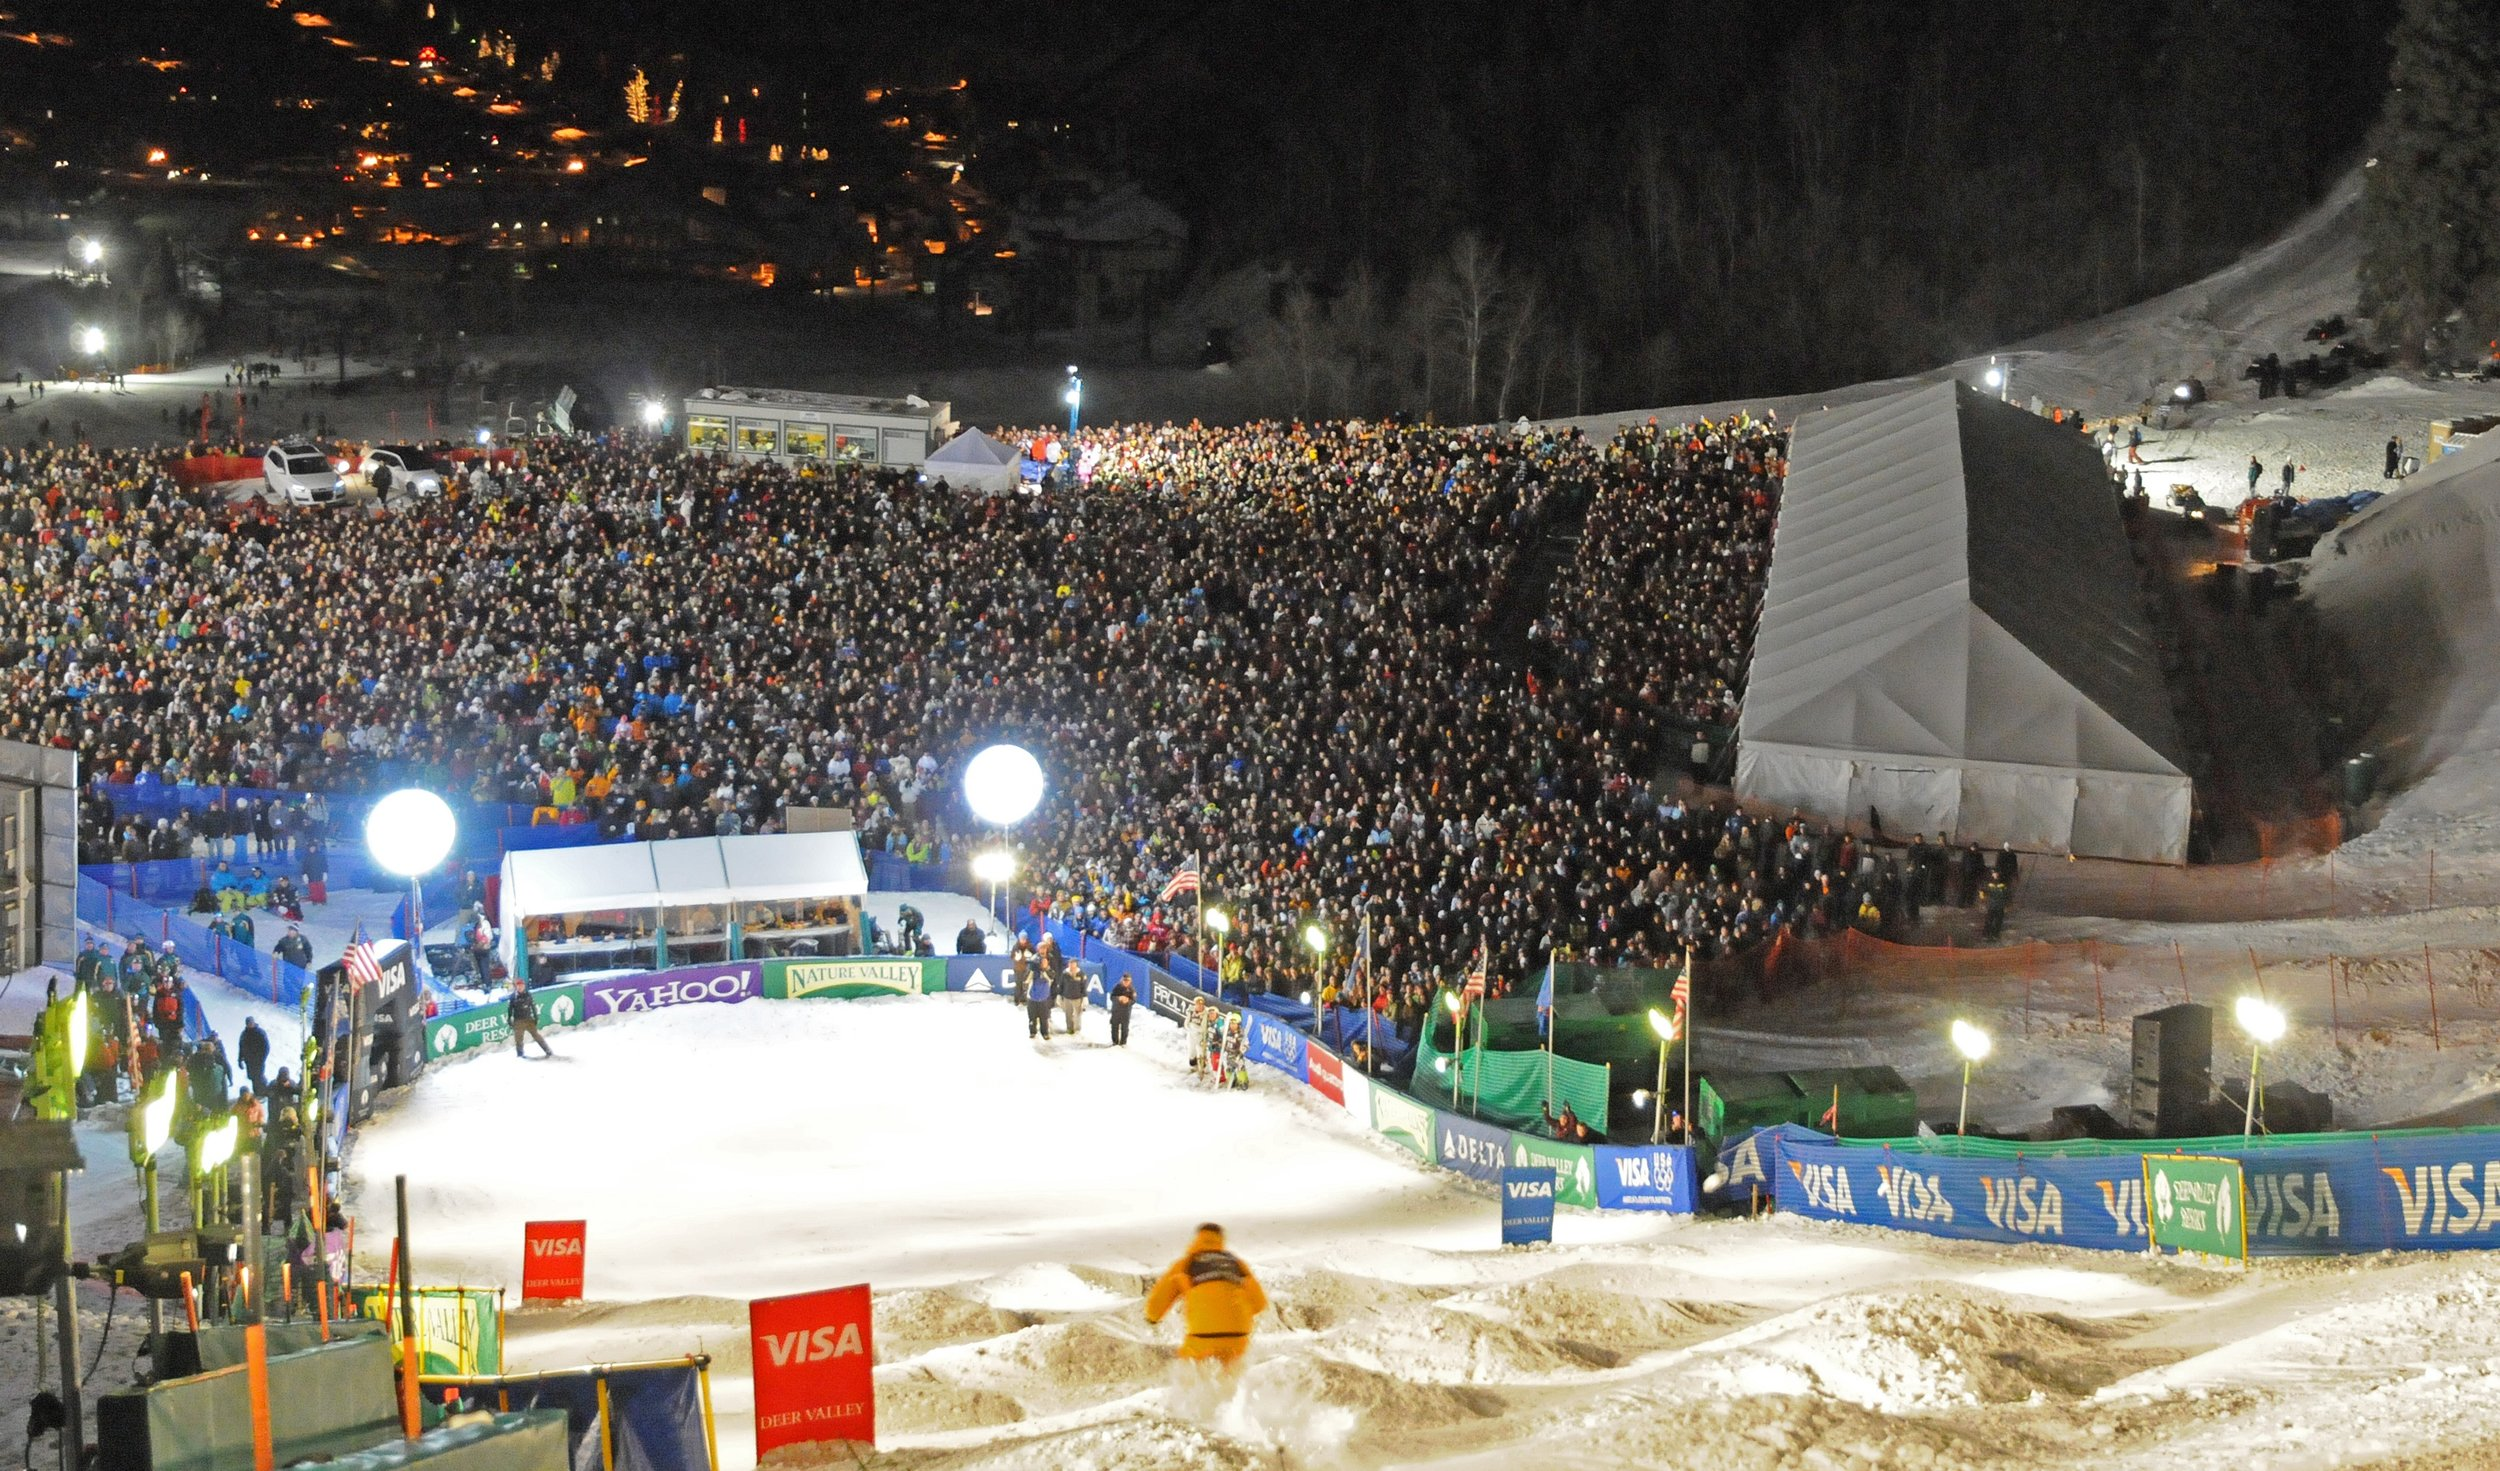 Over 5,000 fans packed the venue at the 2010 Visa Freestyle International moguls World Cup at Deer Valley Resort in Park City, Utah. (U.S. Ski & Snowboard - Tom Kelly).jpg